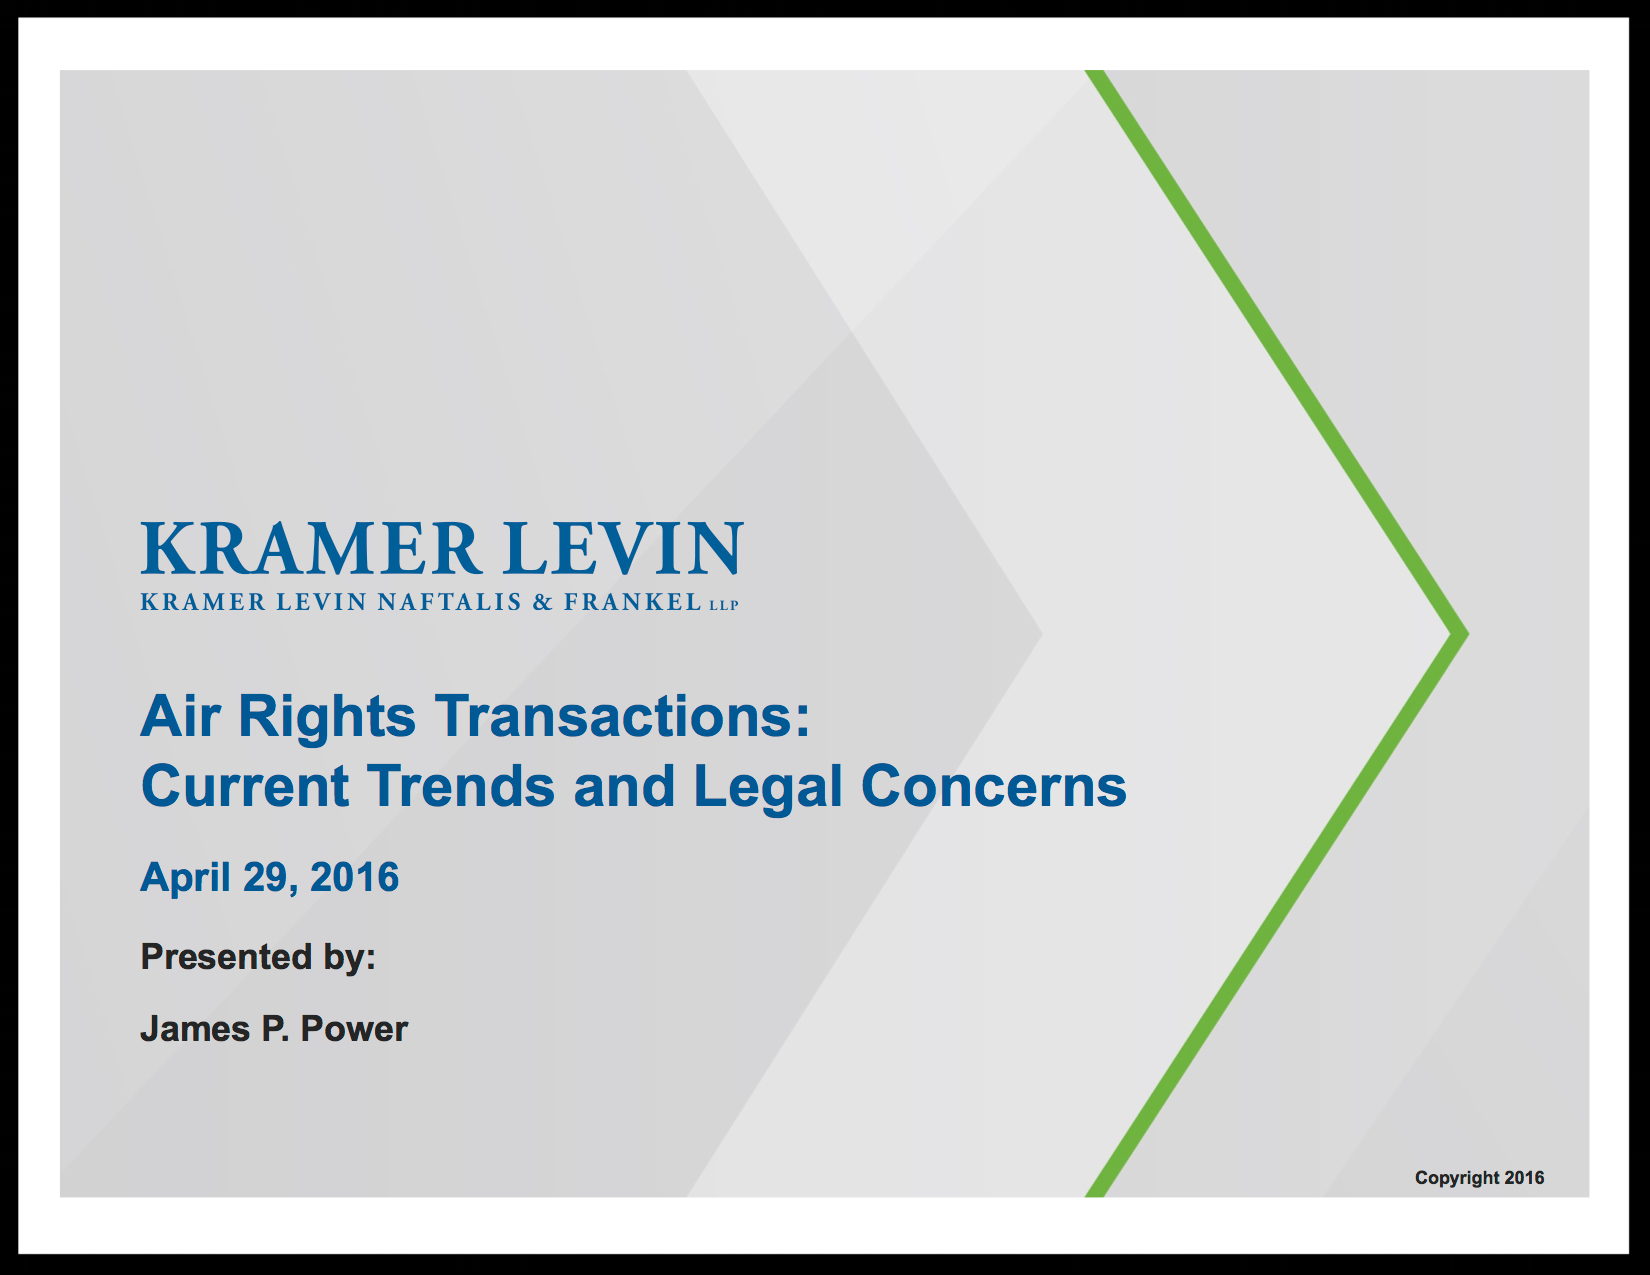 2016-Kramer-Levin-James-Power-Air Rights-Transactions-Current-Trends-and-Legal-Concerns.png